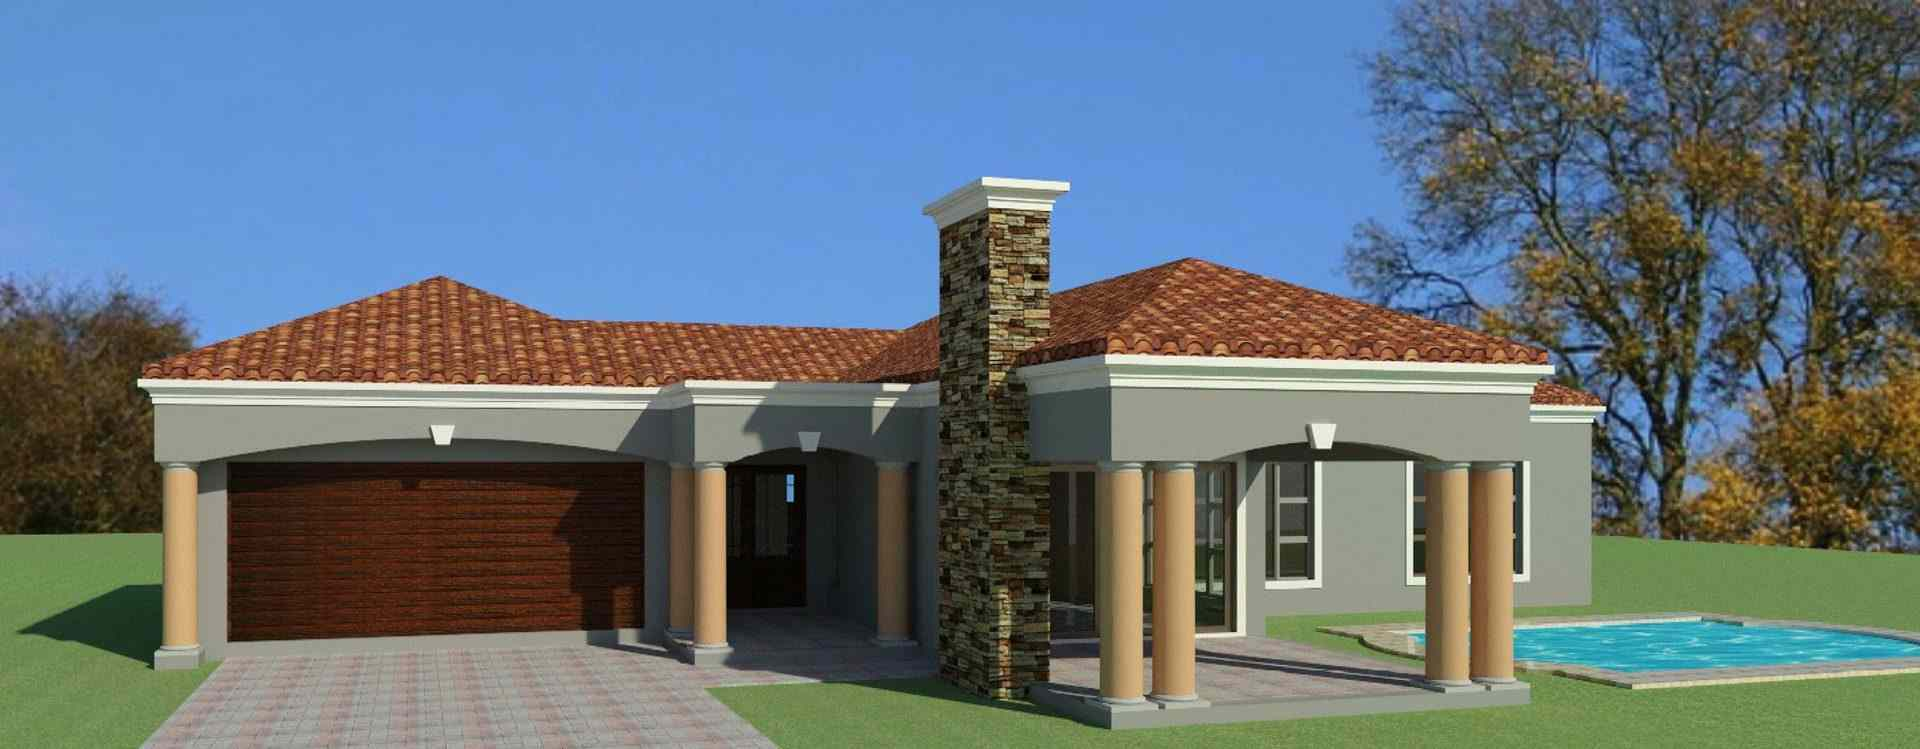 3 Bedroom House Plan For Sale